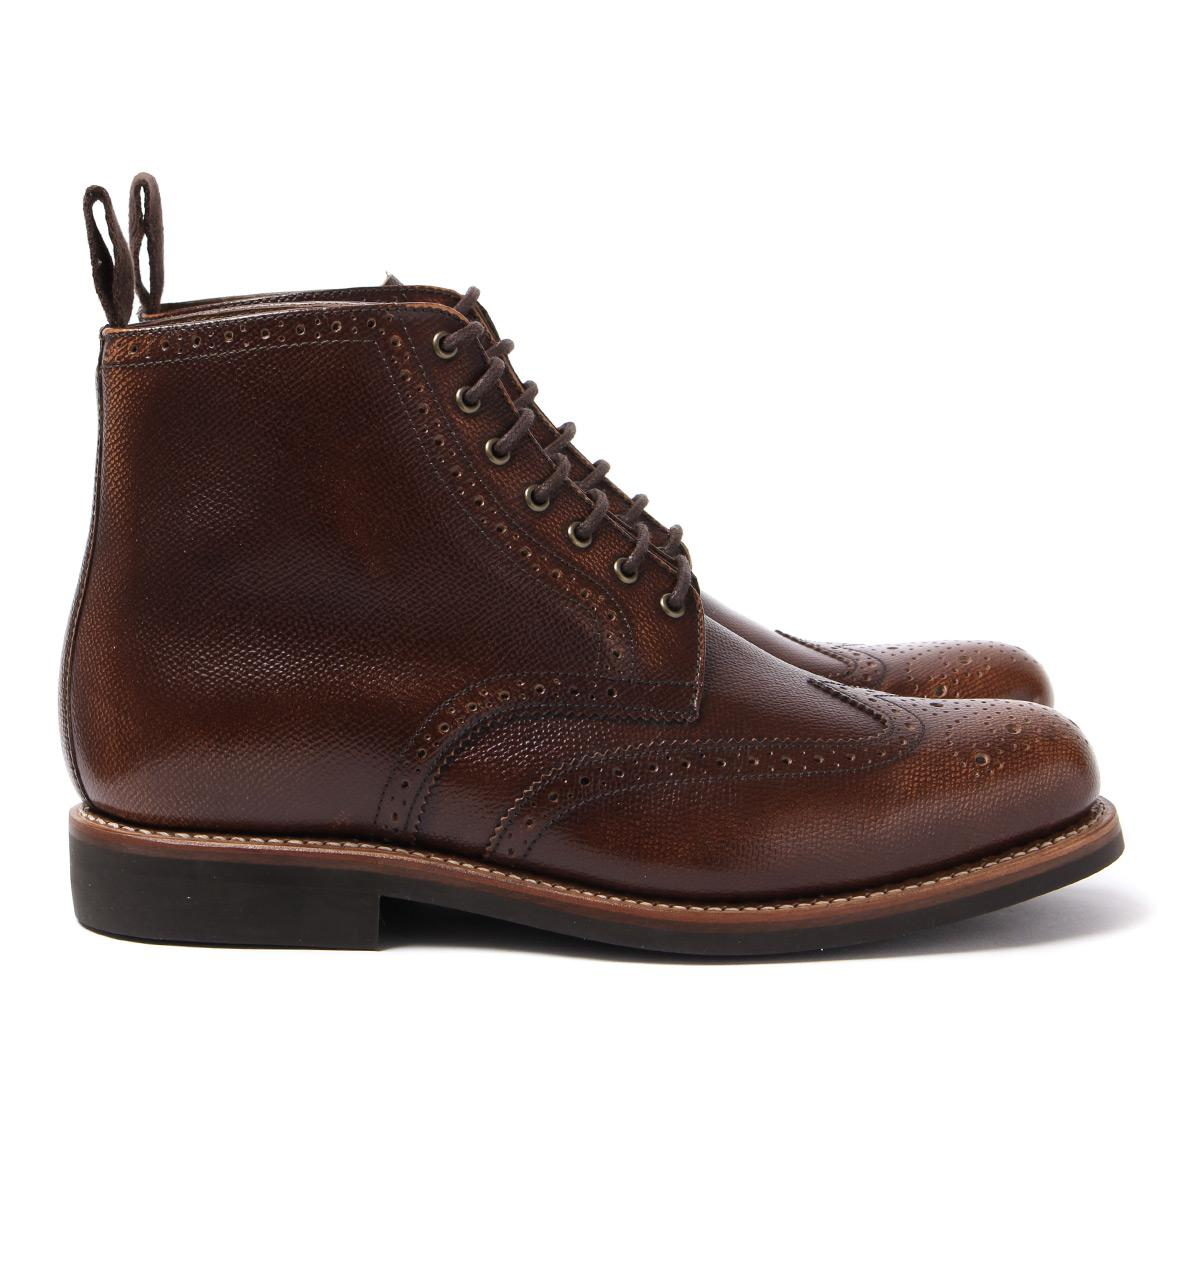 Grenson Shoes Canada